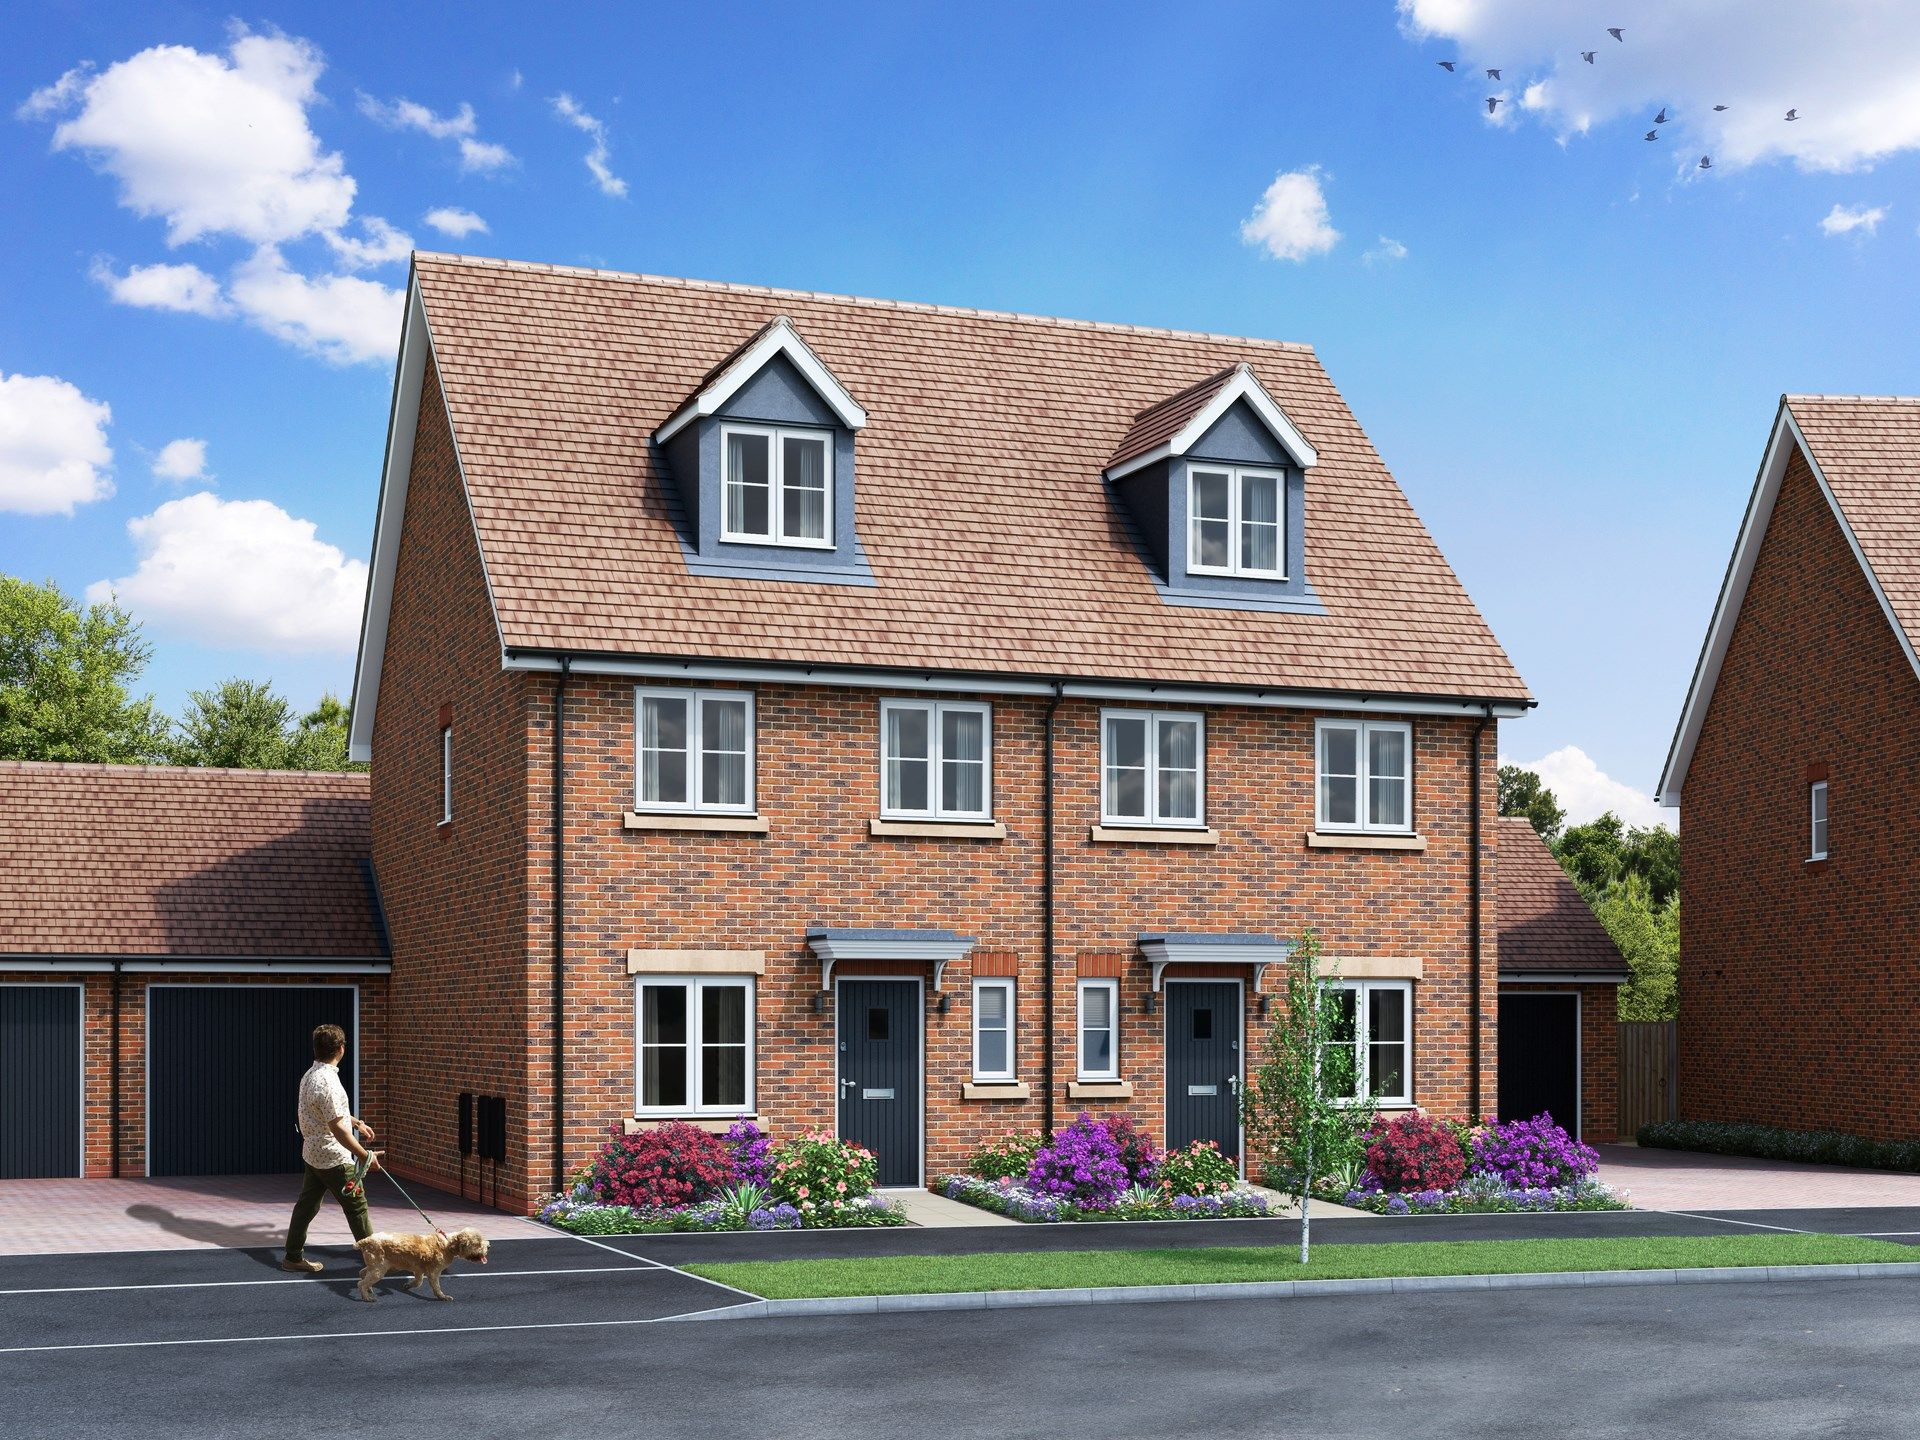 Property photo 1 of 14. Shopwyke Lakes, Chichester